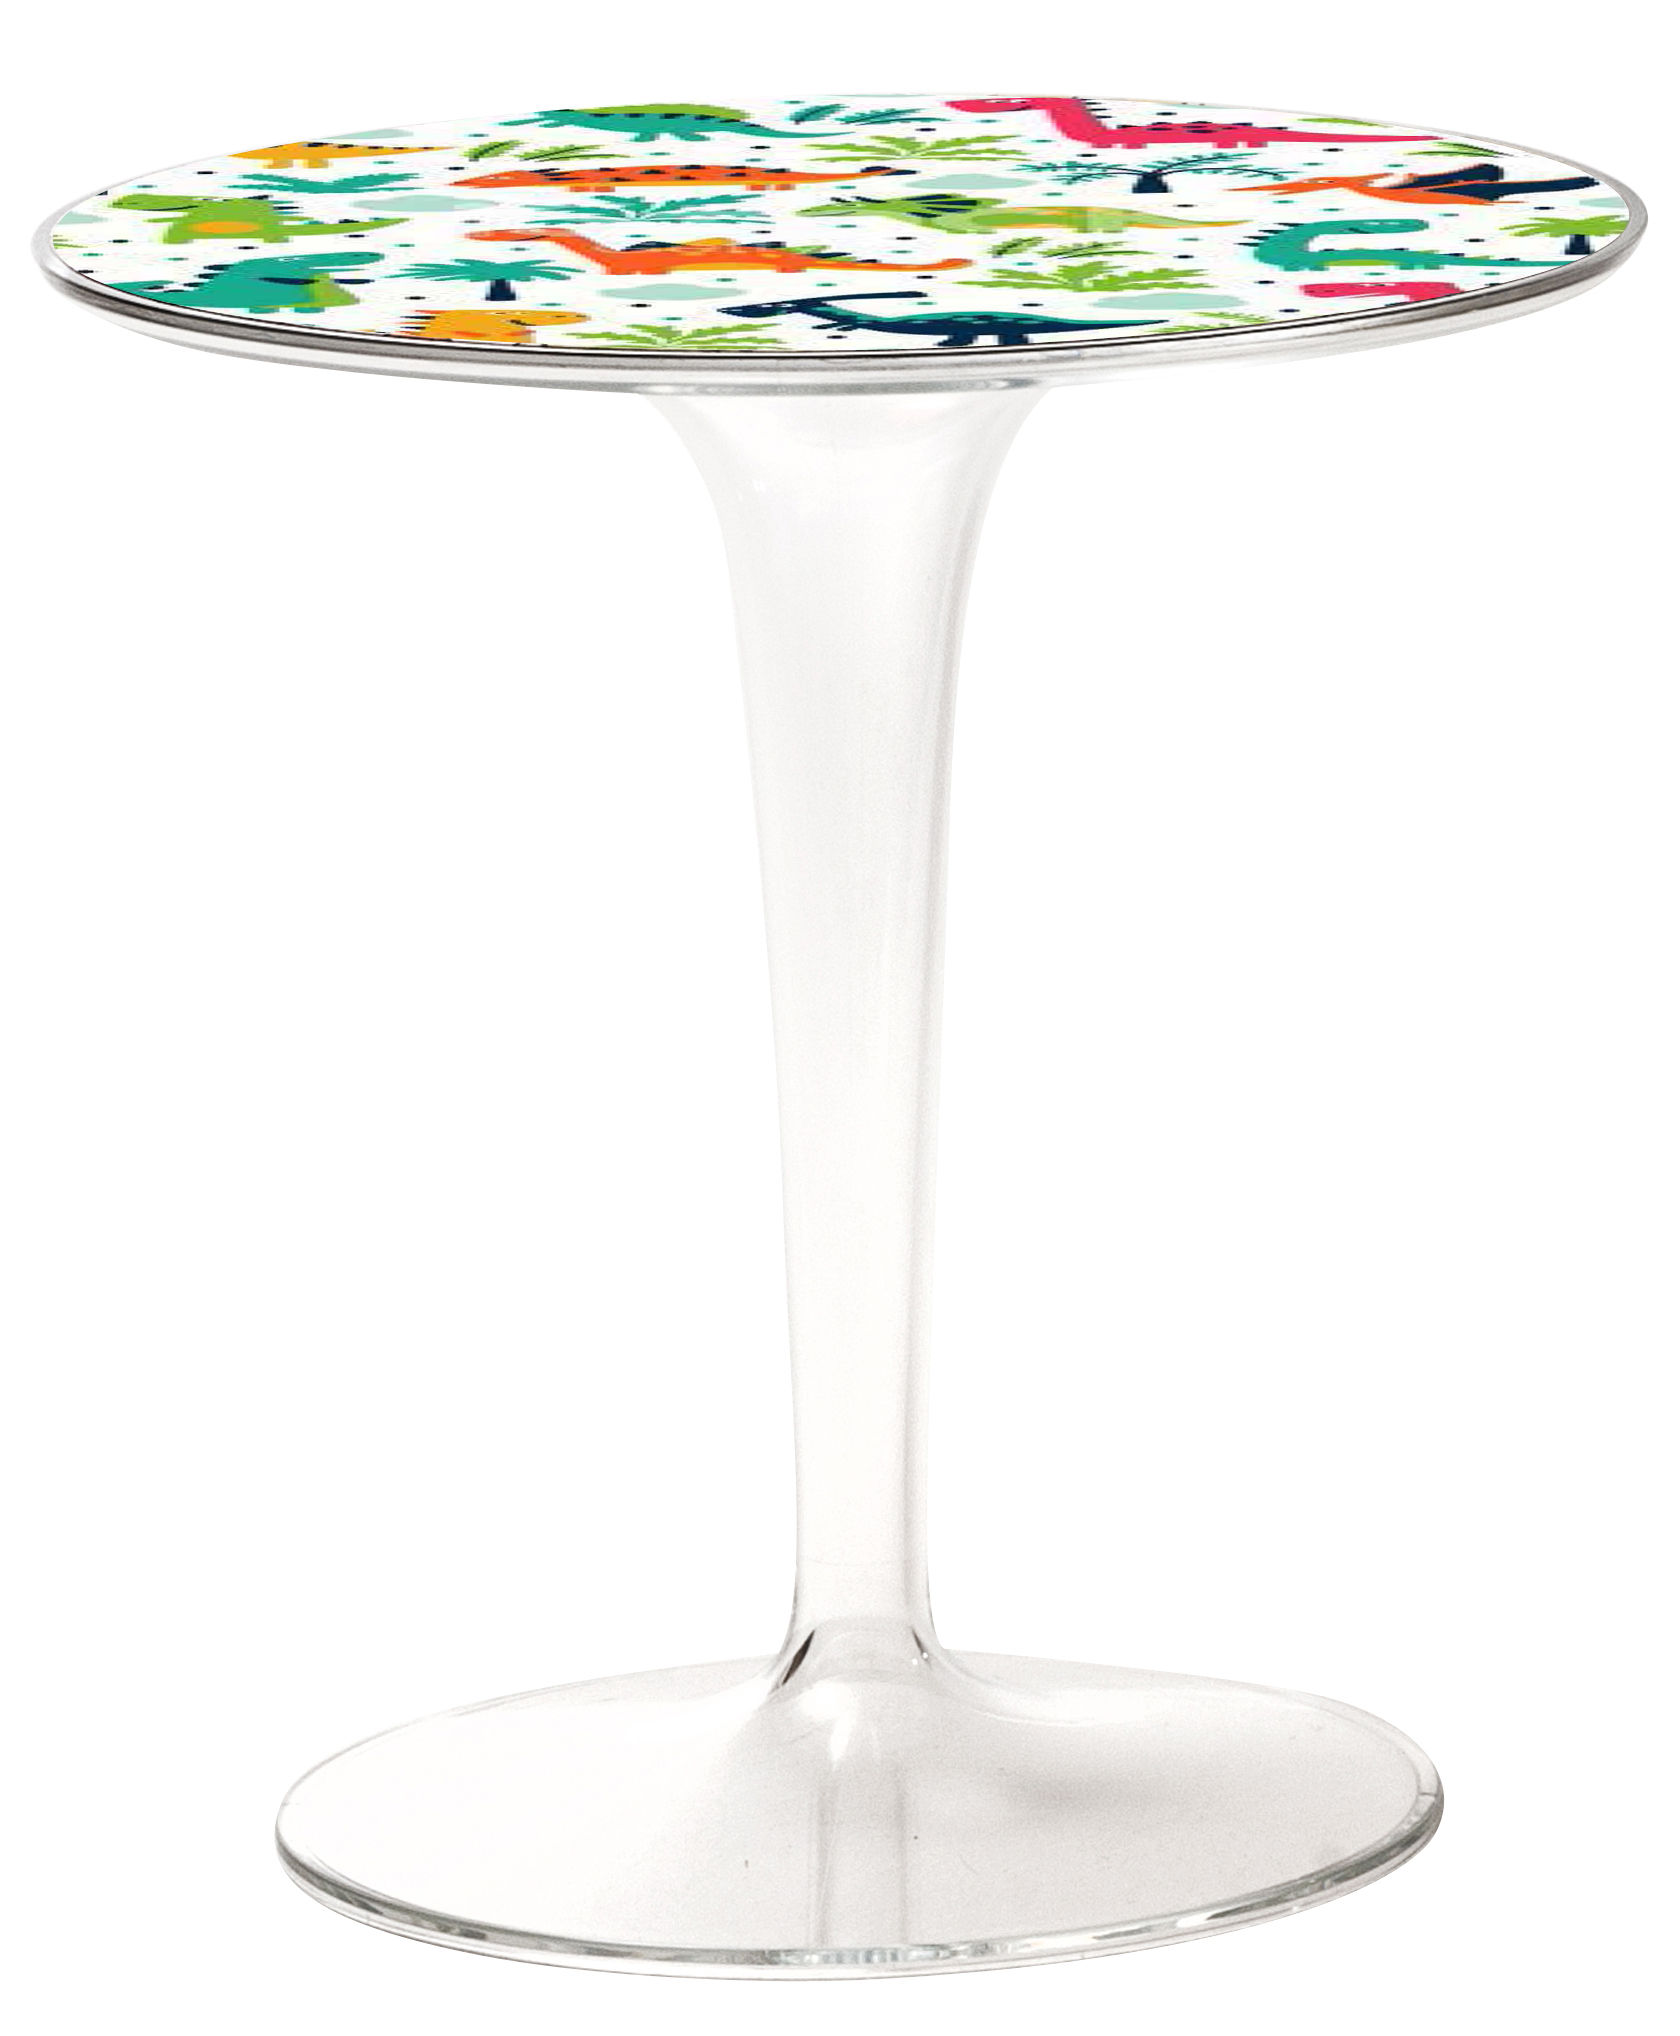 Furniture - Coffee Tables - Tip Top KIDS Children table - / Patterns by Kartell - Dinosaurs / Transparent leg - PMMA